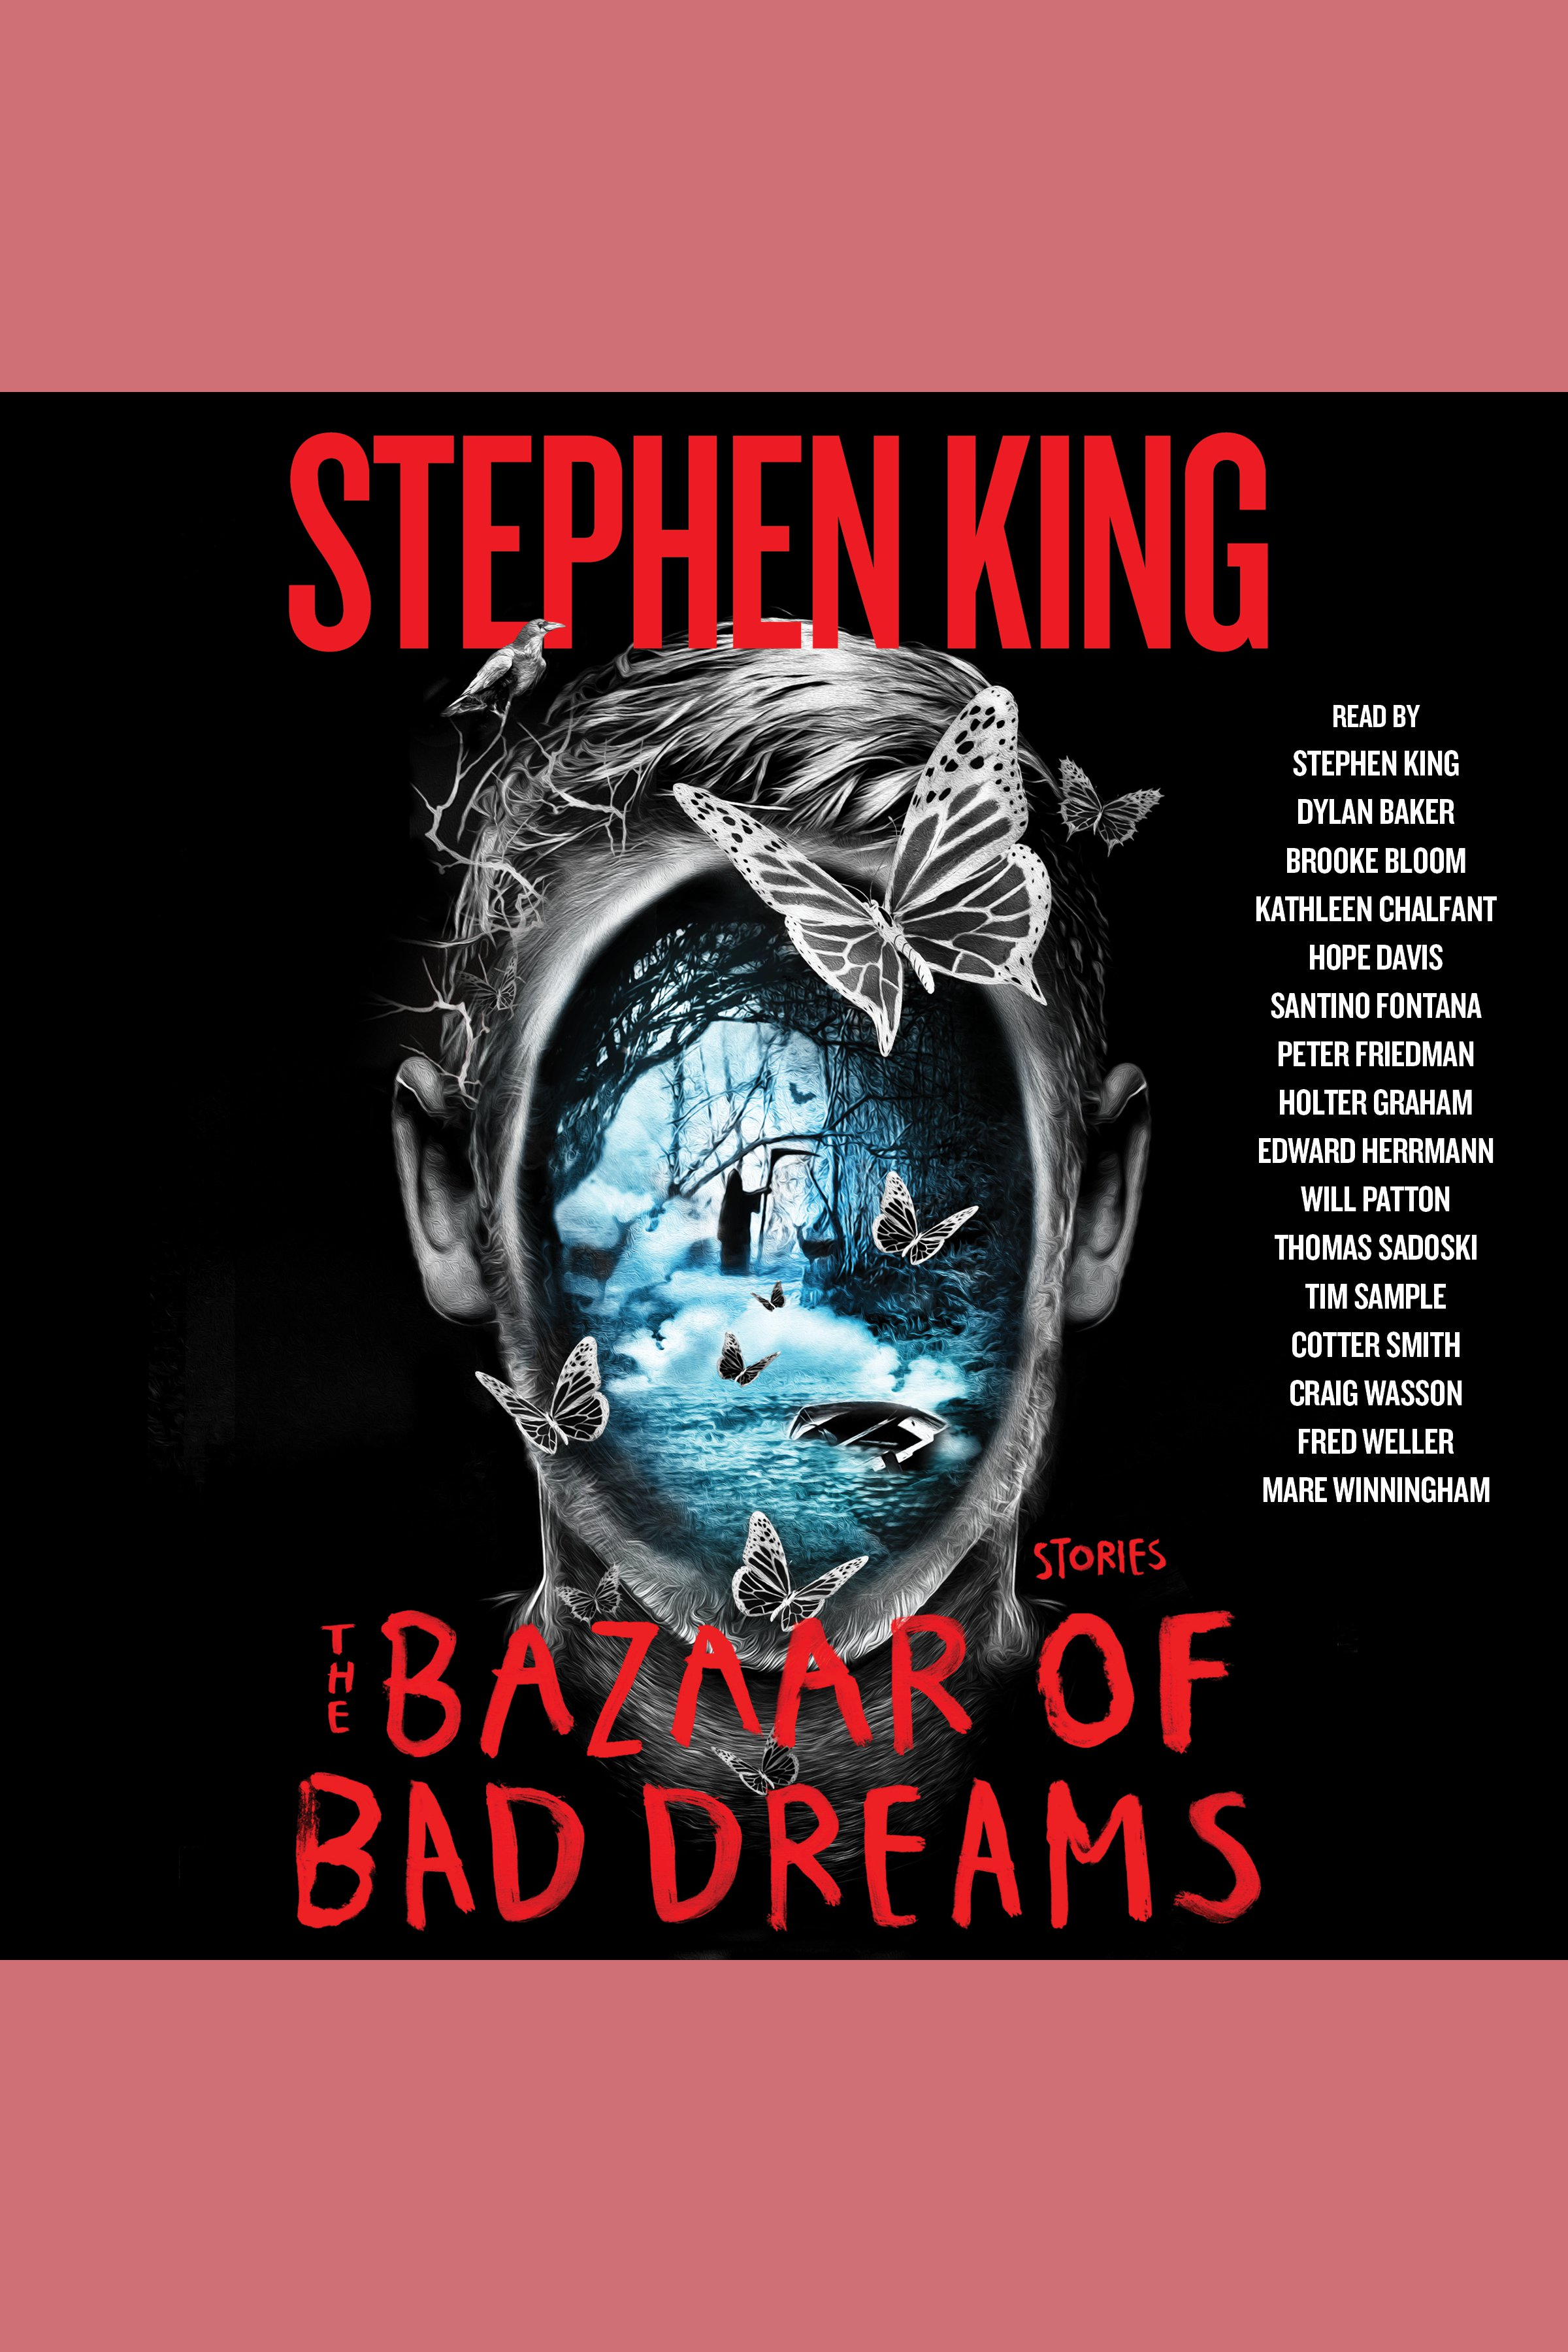 The bazaar of bad dreams stories cover image